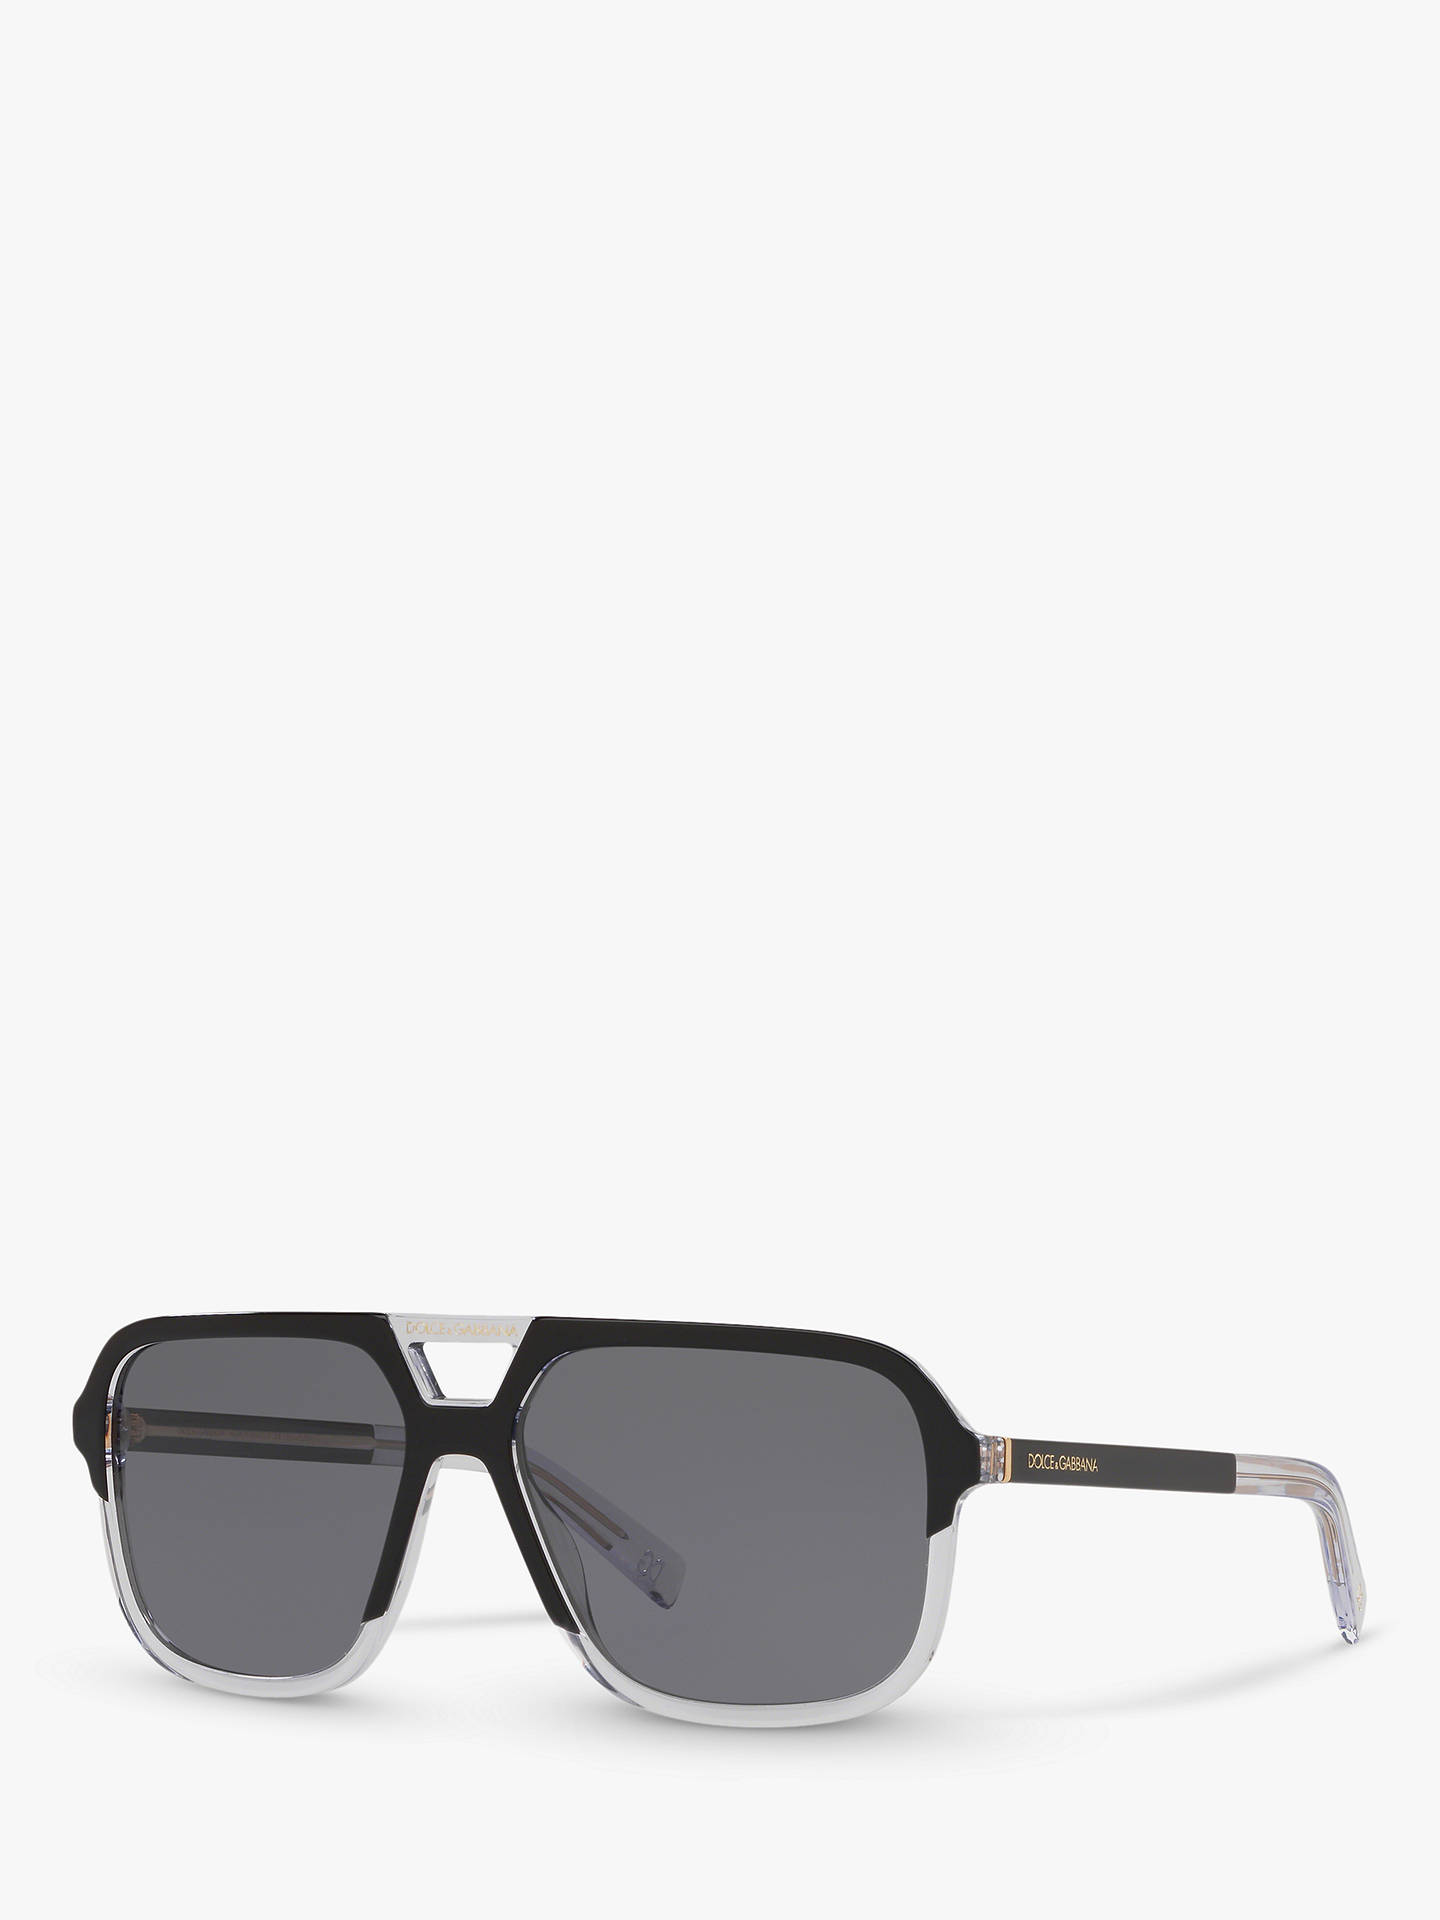 4888d406503d Buy Dolce & Gabbana DG4354 Men's Polarised Square Sunglasses, Black  Clear/Grey Online at ...